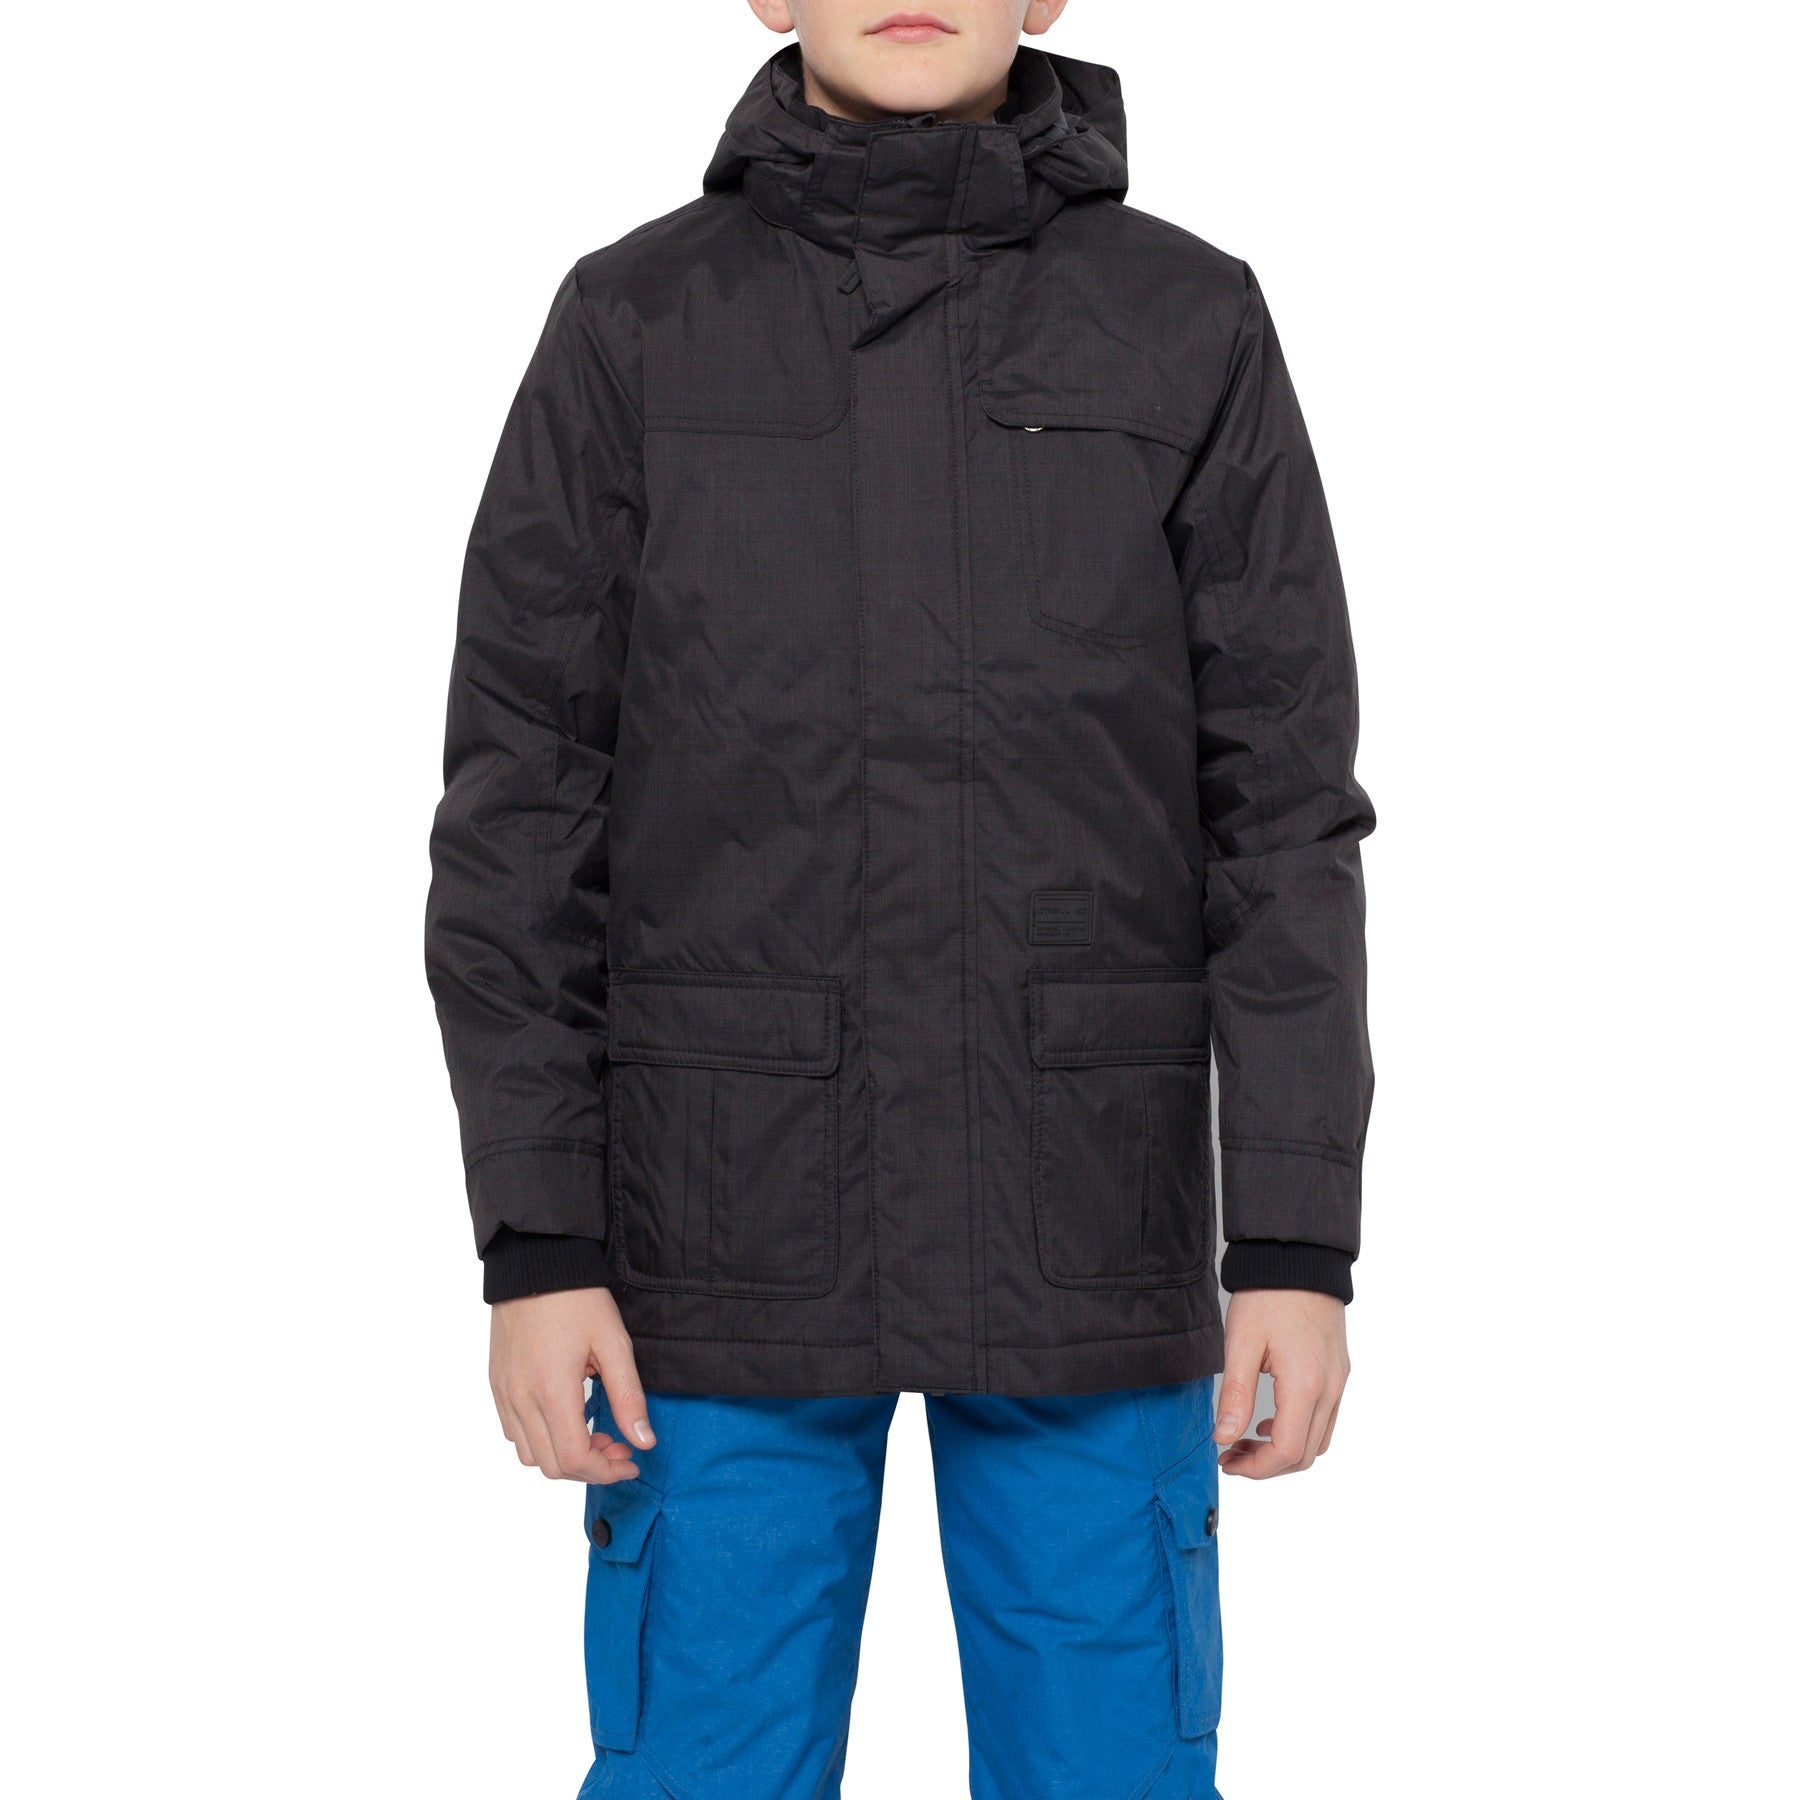 Kids Rockaway jacket Black Out - Stoked Boardshop  - 4